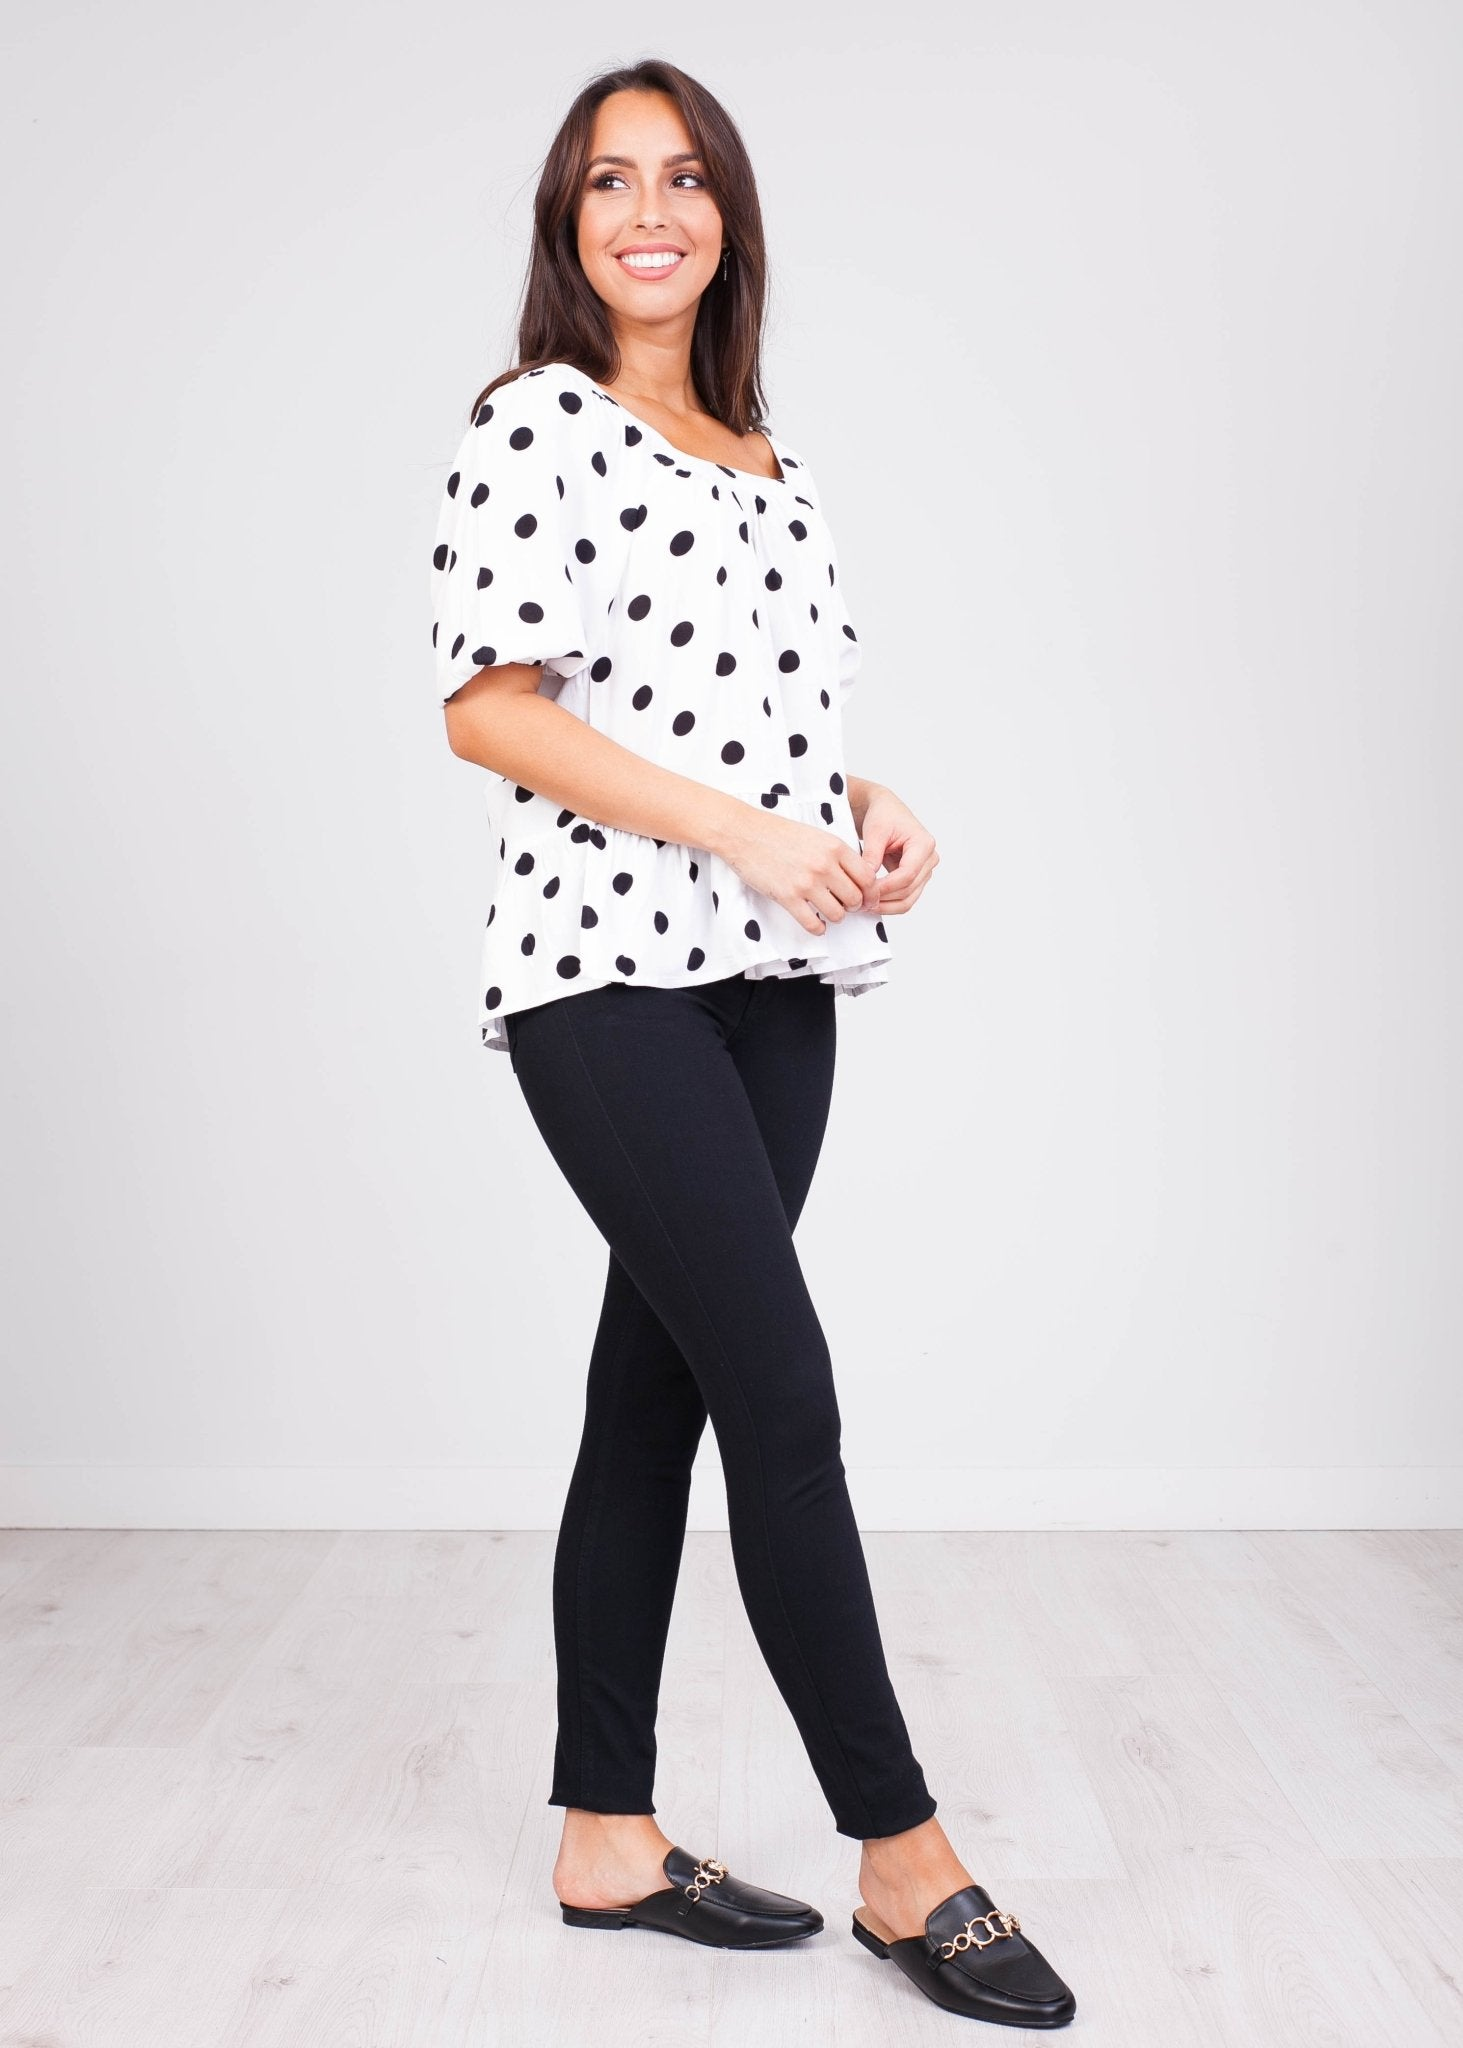 Sissy B&W Polka Dot Top - The Walk in Wardrobe